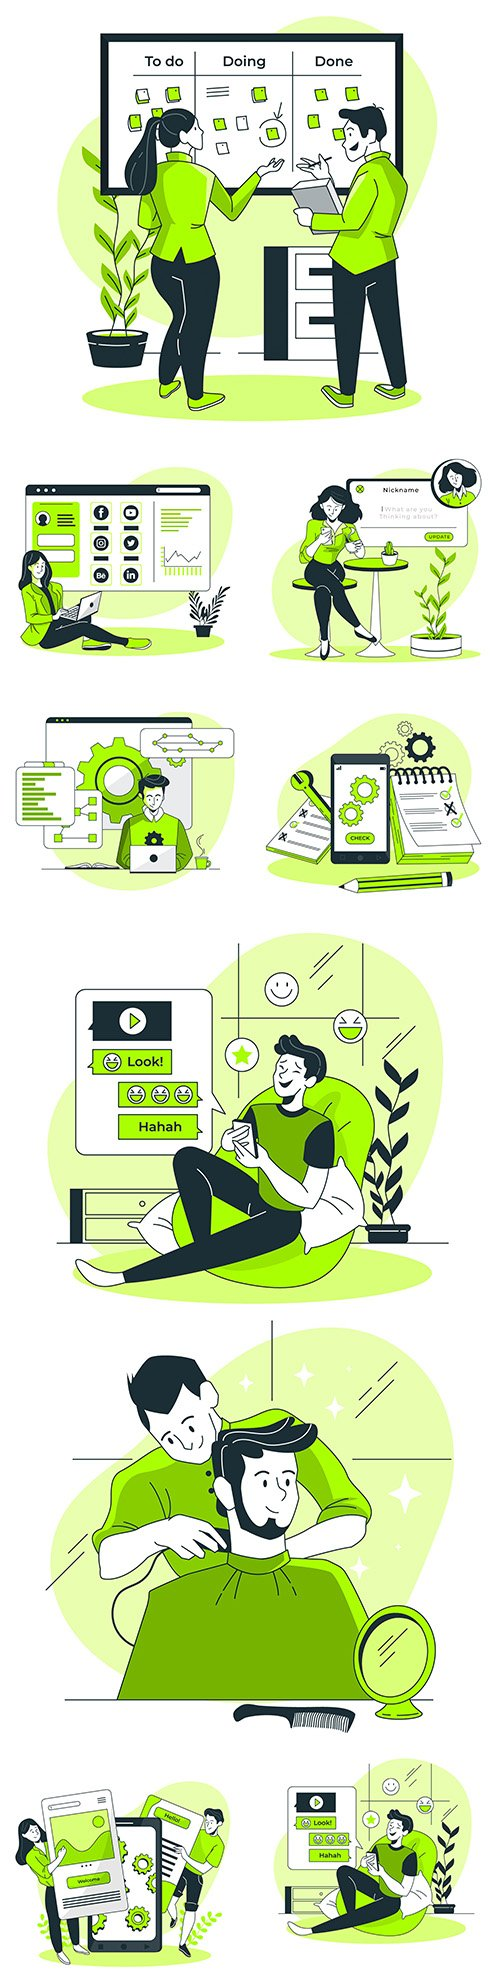 People in different situations and mobile illustration app